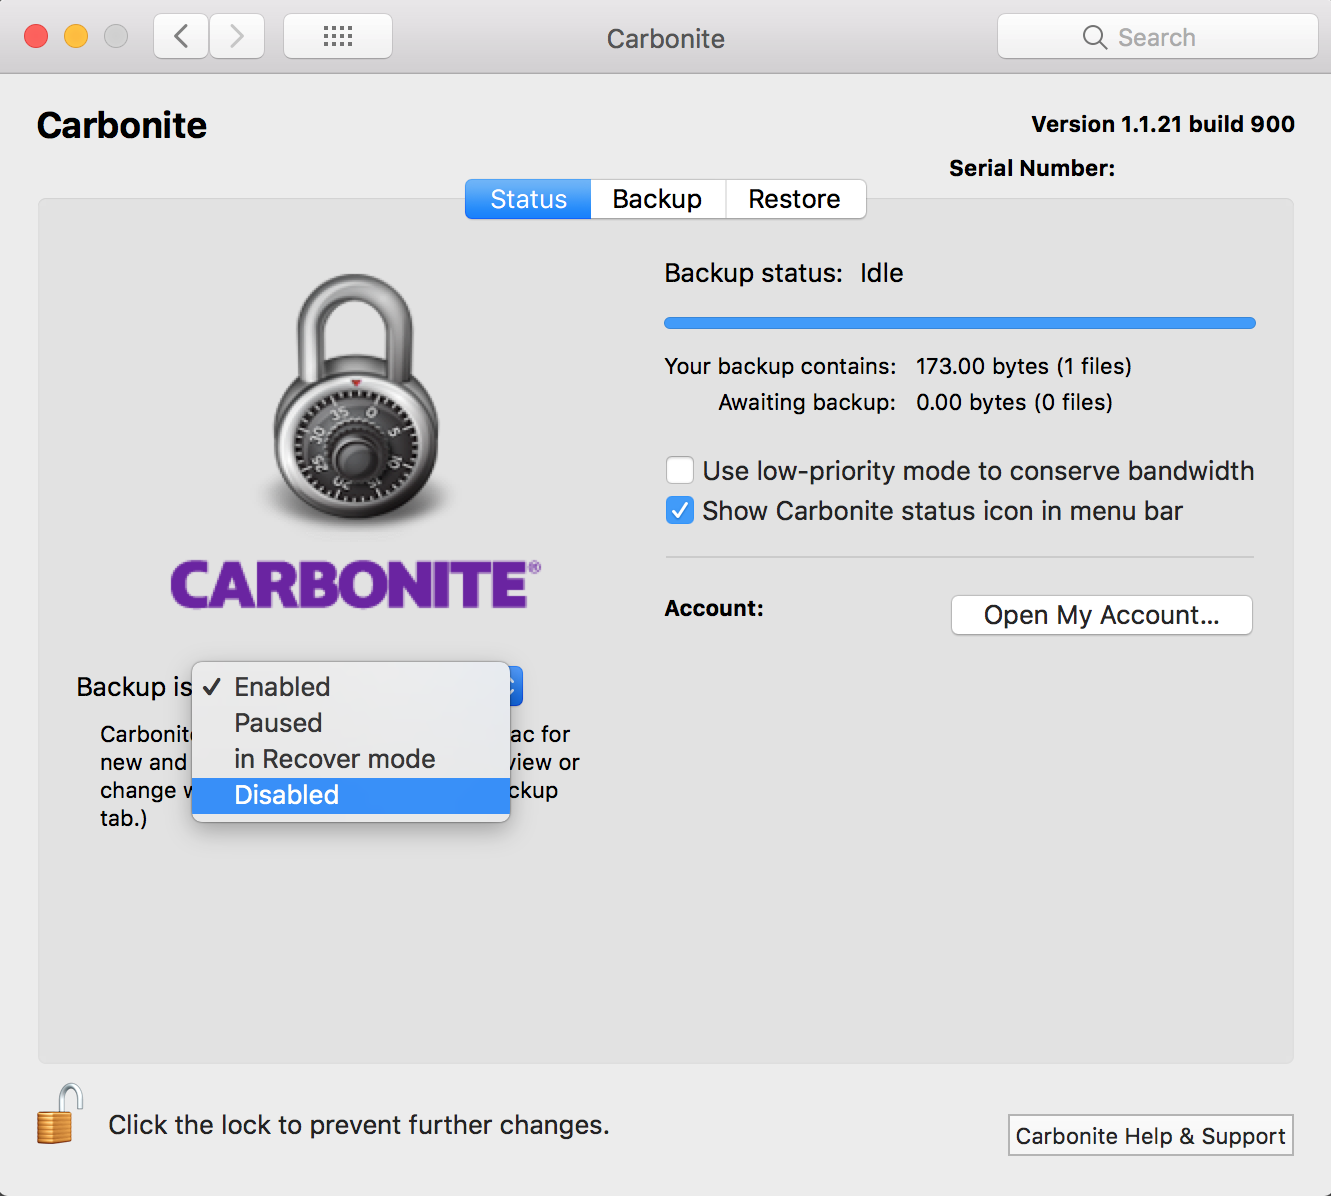 Carbonite Preferences Pane: Disable